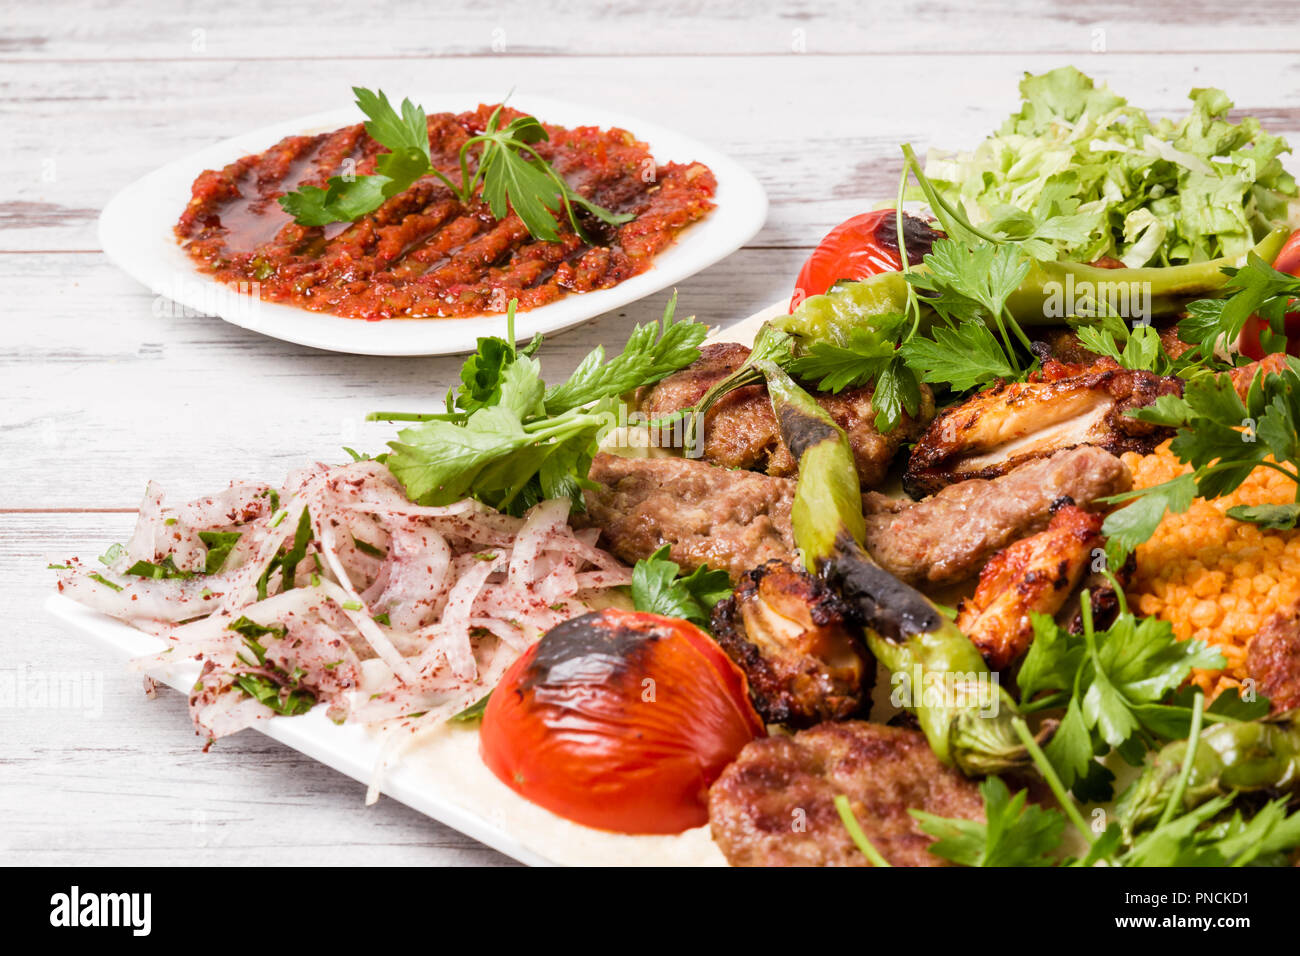 Turkish Traditional Mixed Kebab Plate With Adana And Chicken Kebabs Stock Photo Alamy